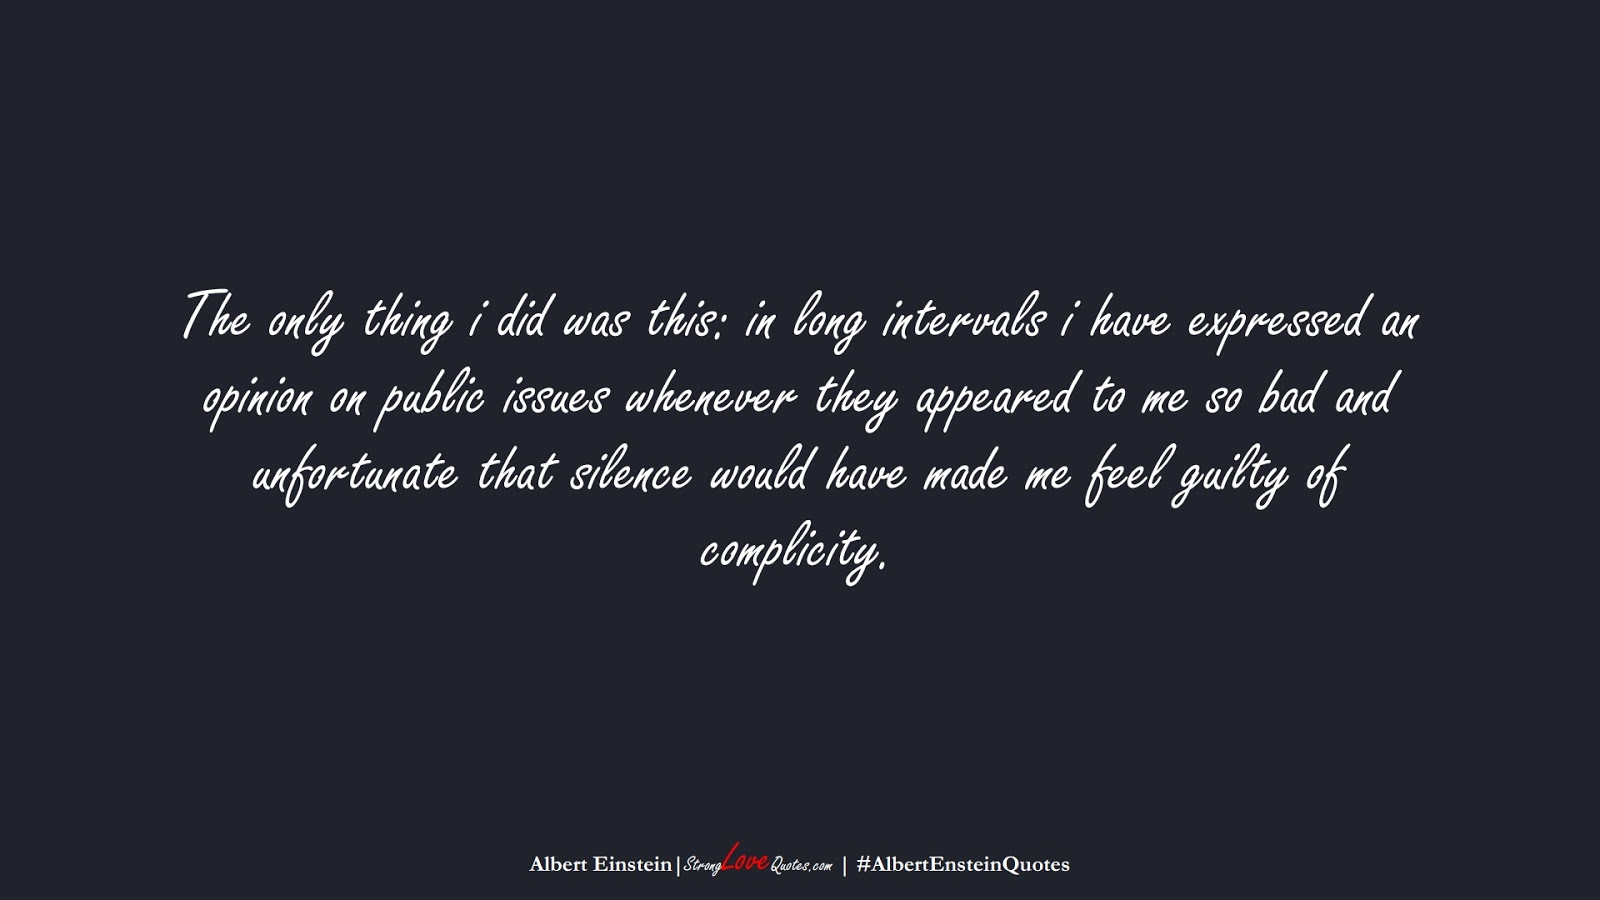 The only thing i did was this: in long intervals i have expressed an opinion on public issues whenever they appeared to me so bad and unfortunate that silence would have made me feel guilty of complicity. (Albert Einstein);  #AlbertEnsteinQuotes